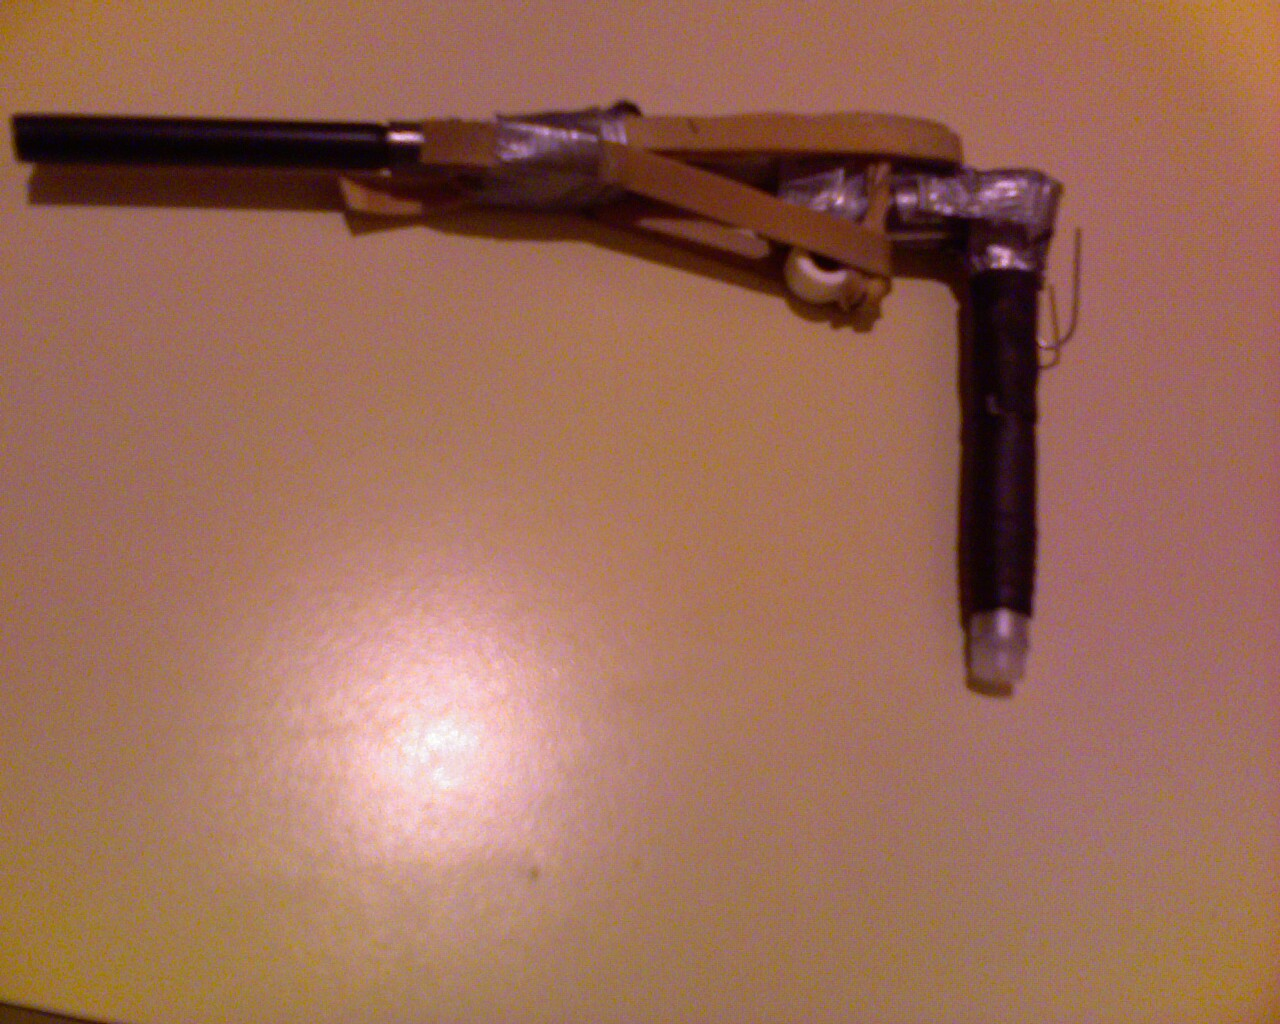 Pen pistol with trigger